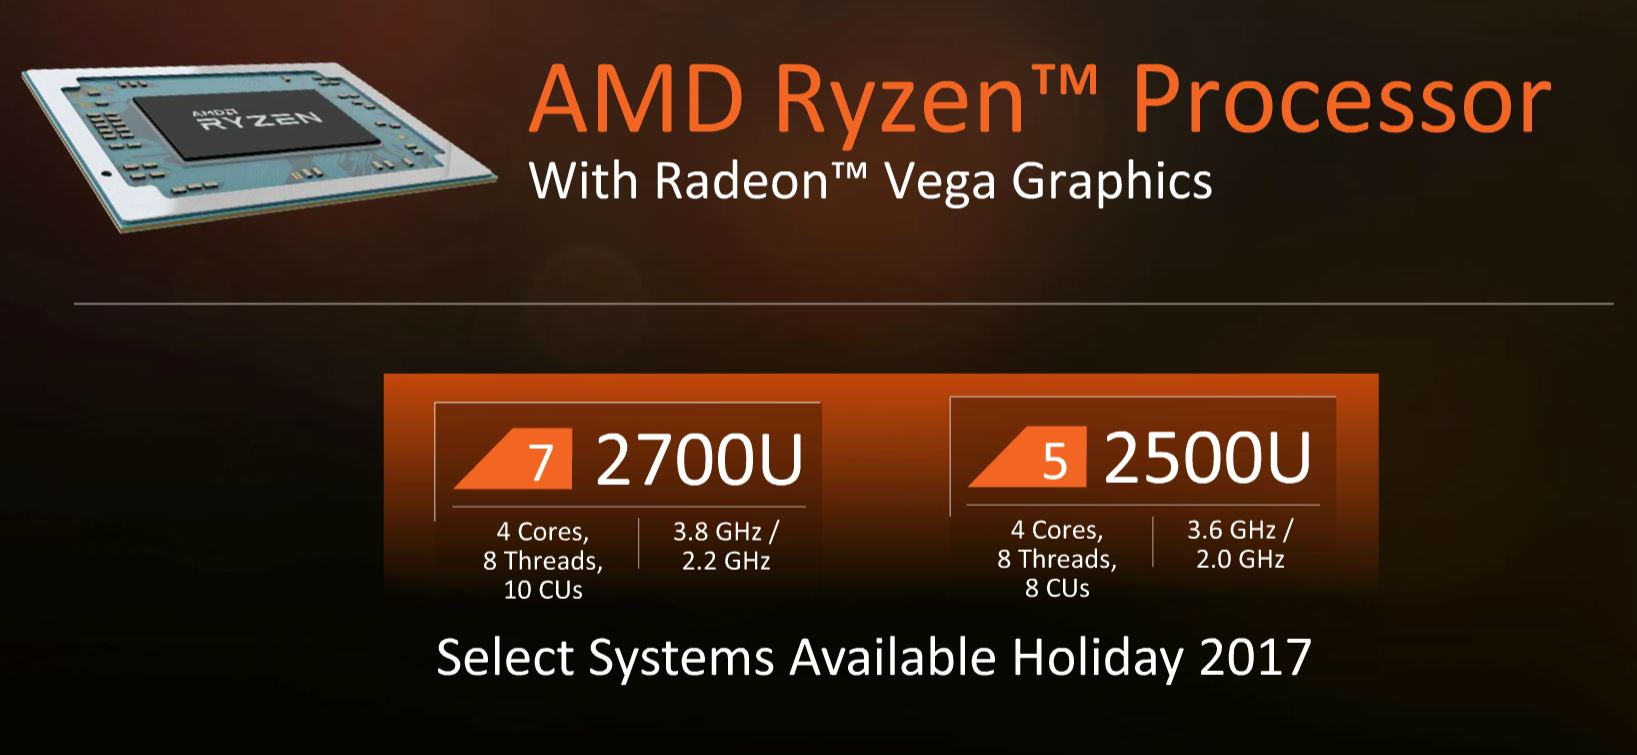 AMD Ryzen Mobile Cores And Clocks